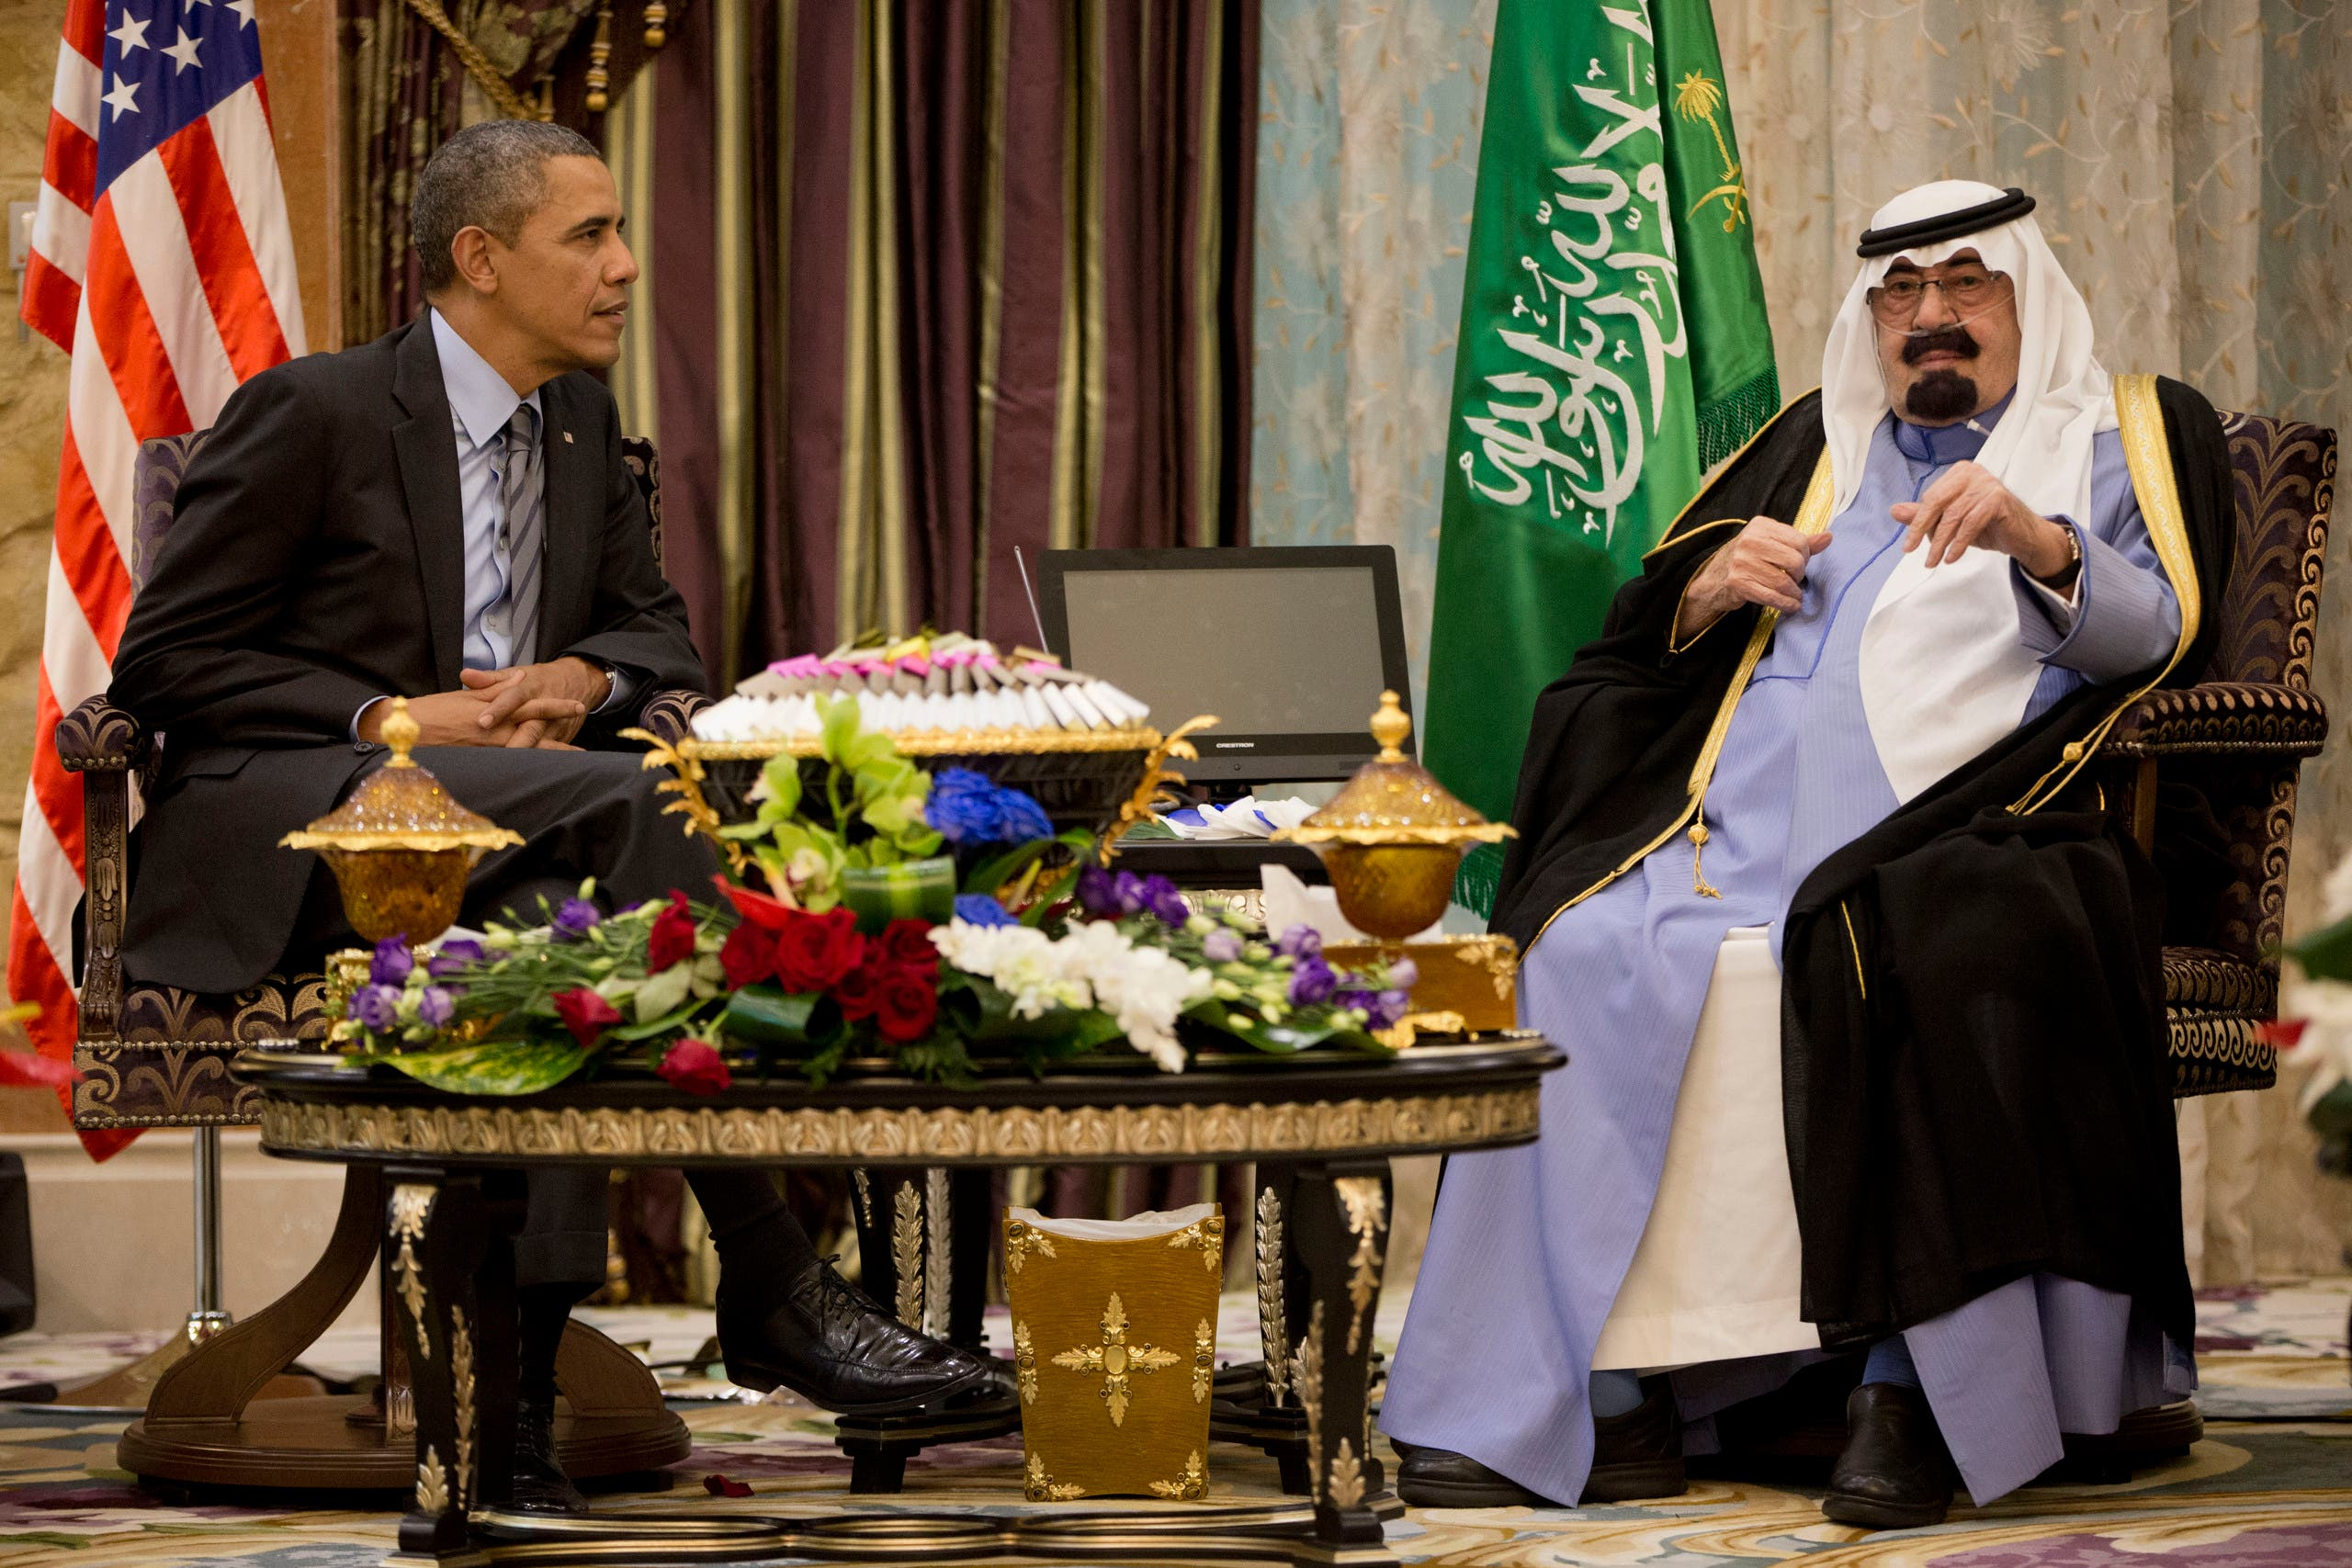 In this March 28, 2014 file photo, US President Barack Obama meets with Saudi King Abdullah (File Photo: AP)